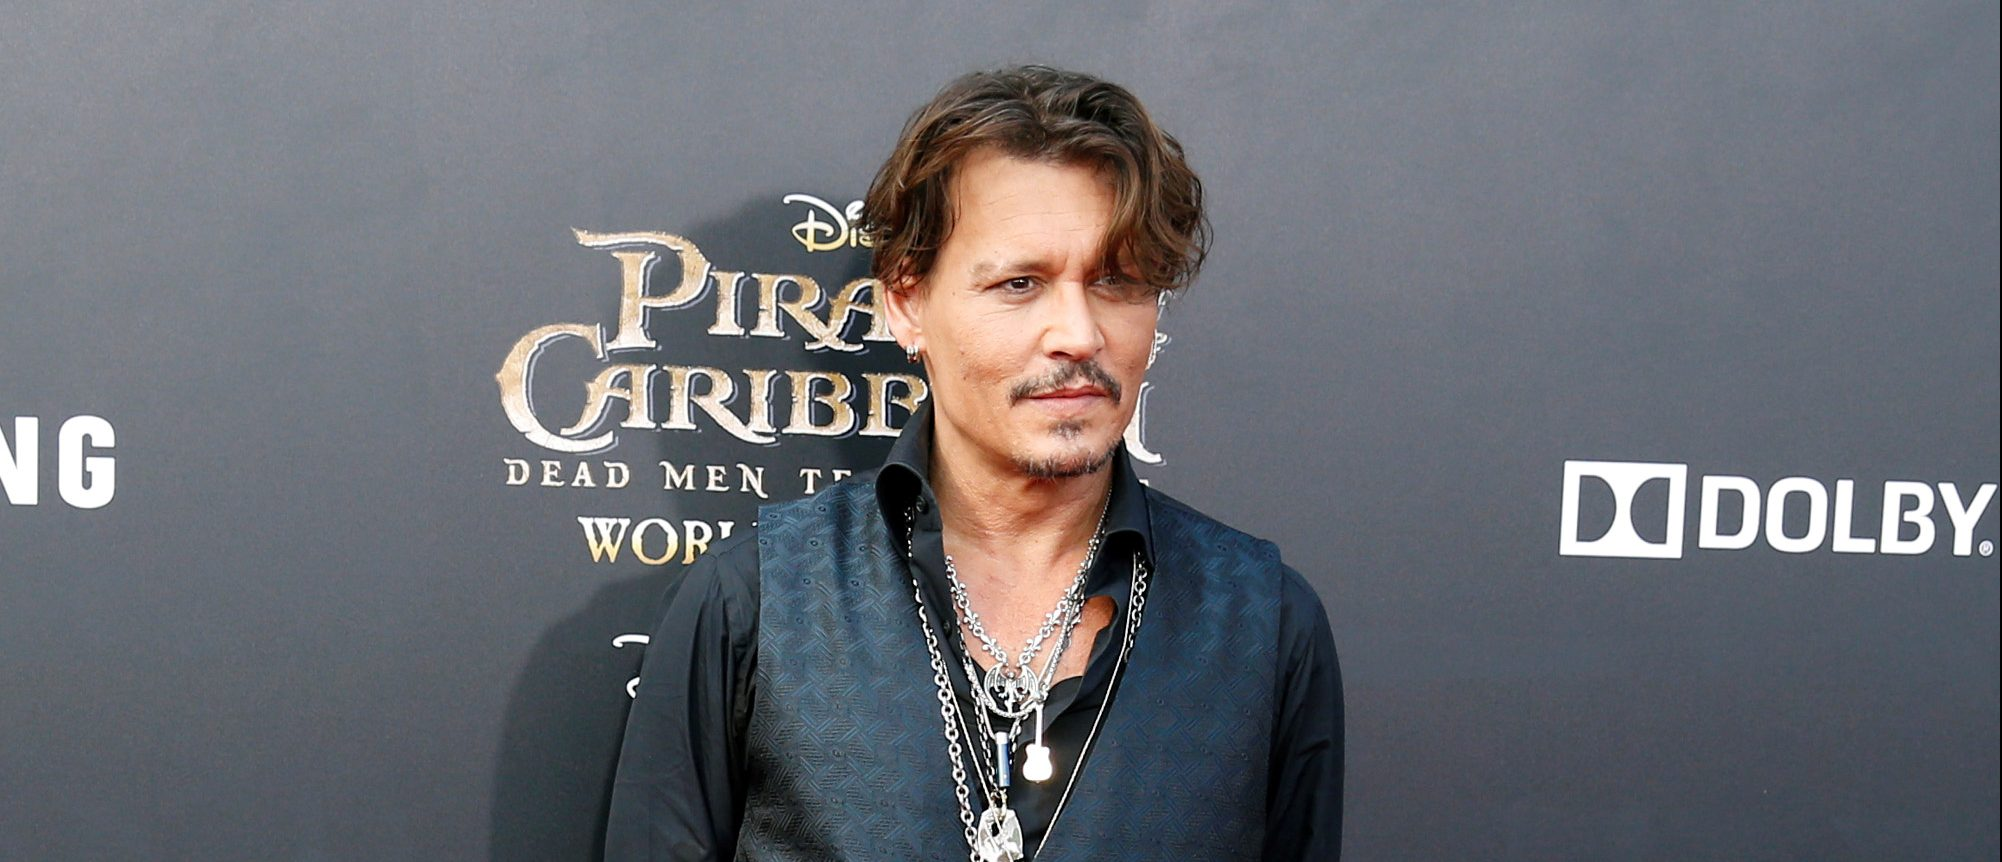 Actor Johnny Depp. (Photo:Reuters)